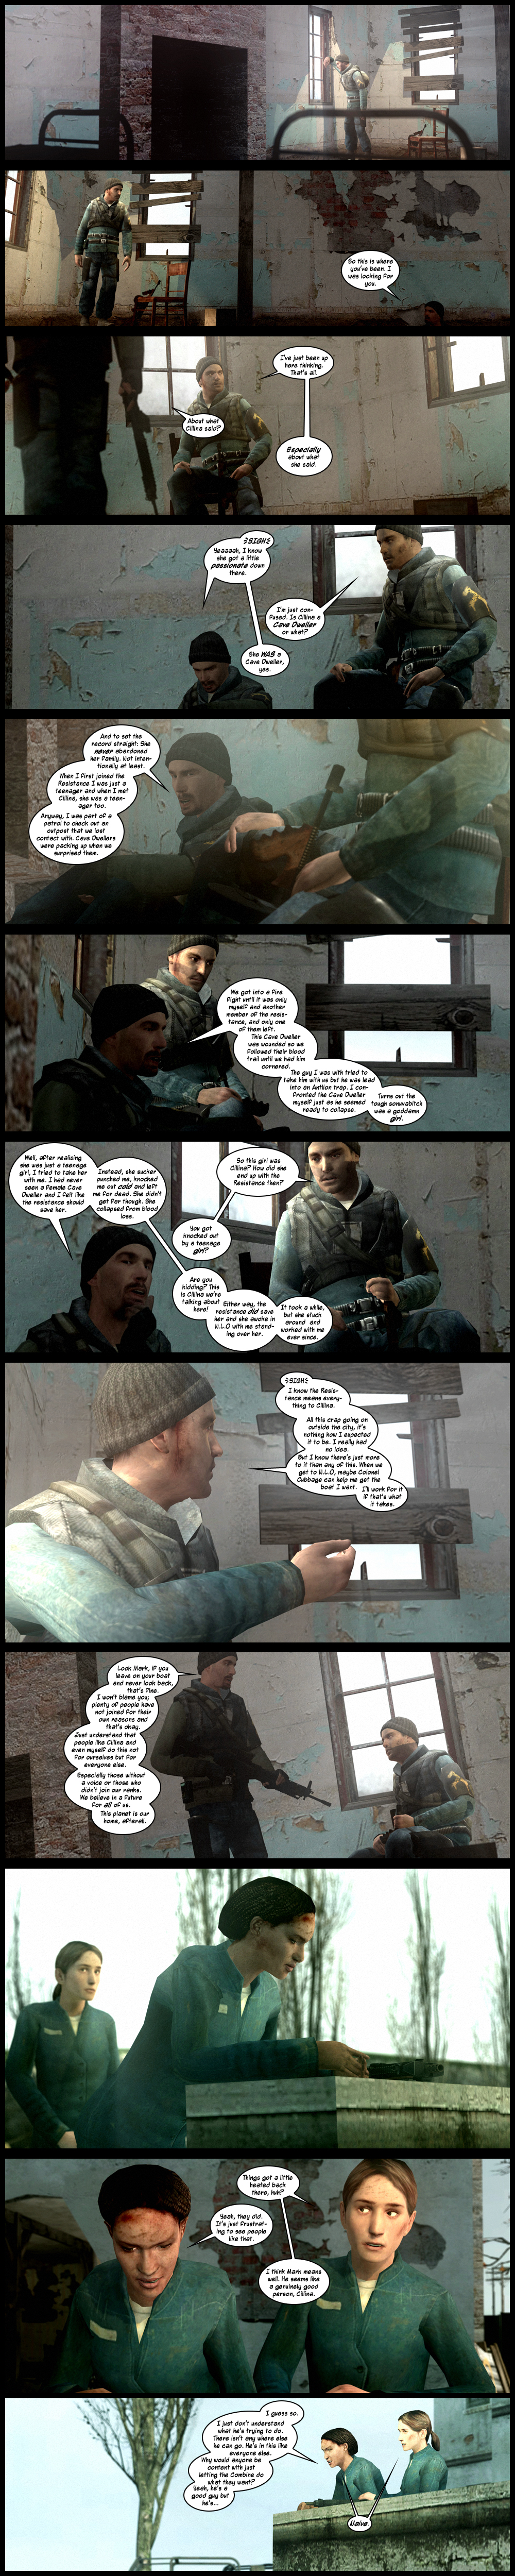 Beyond Borders Episode V Page 7